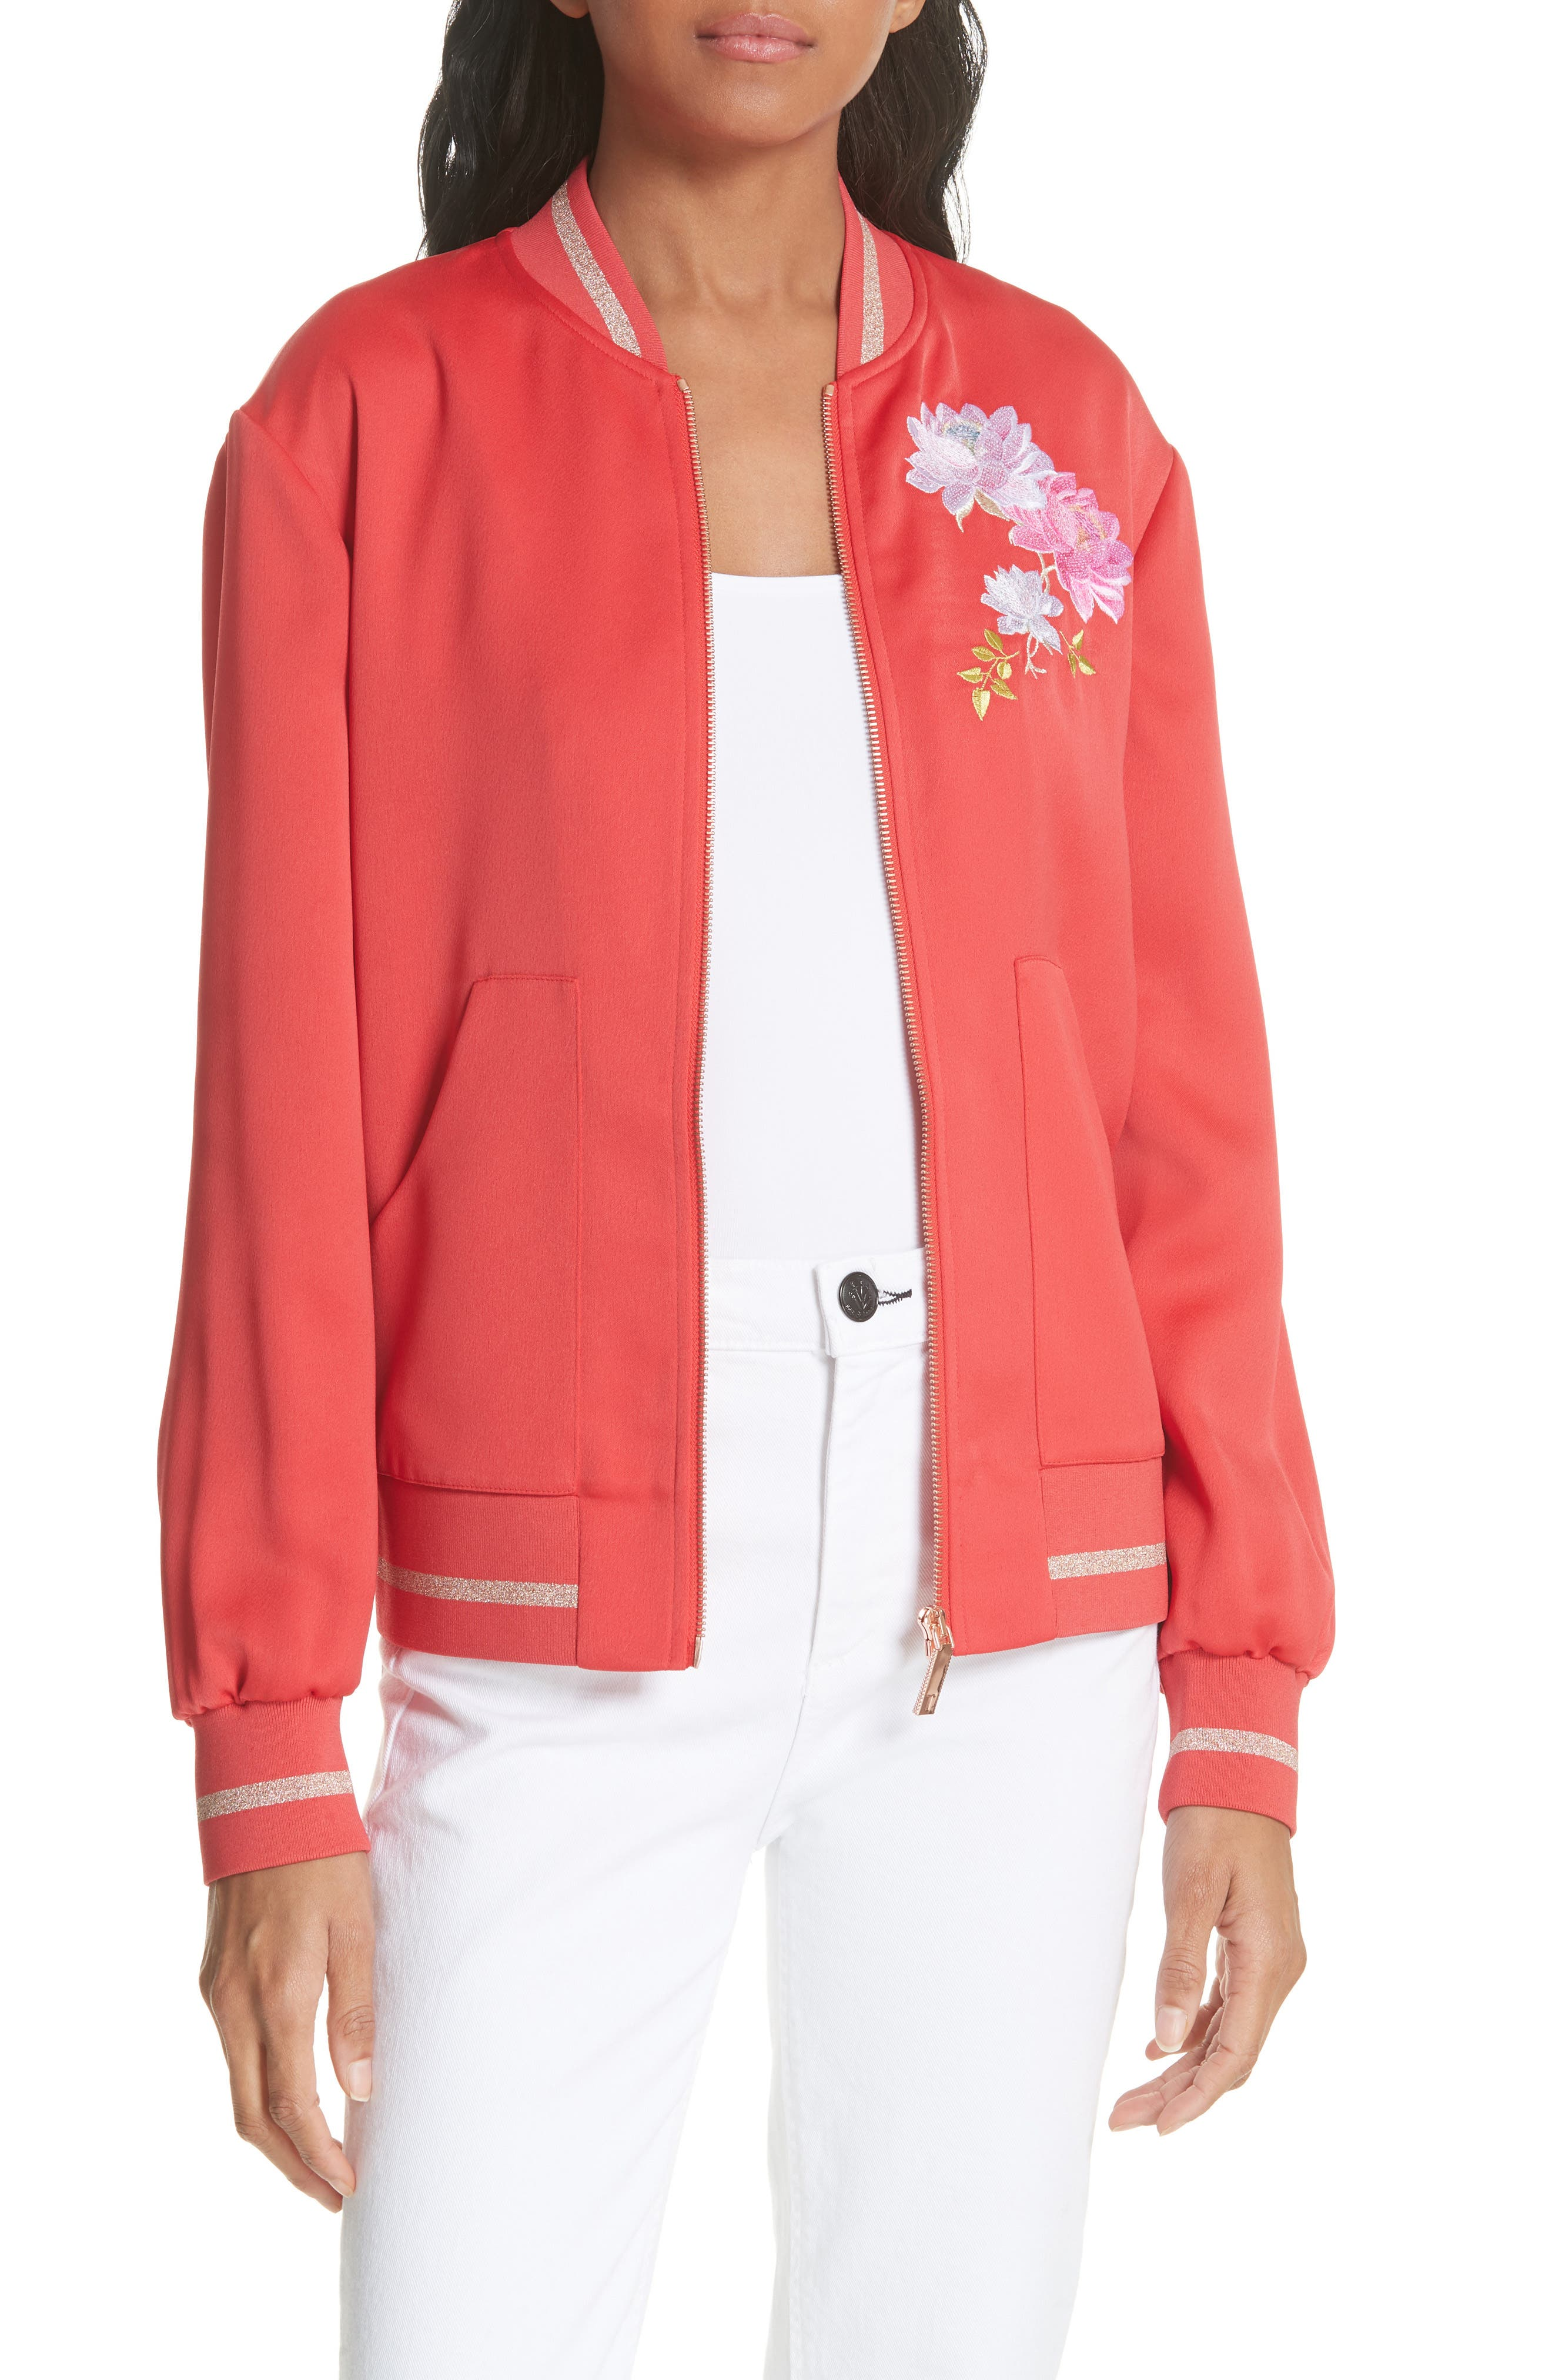 Ruuthe Chinoiserie Embroidery Jacket,                         Main,                         color, Bright Red